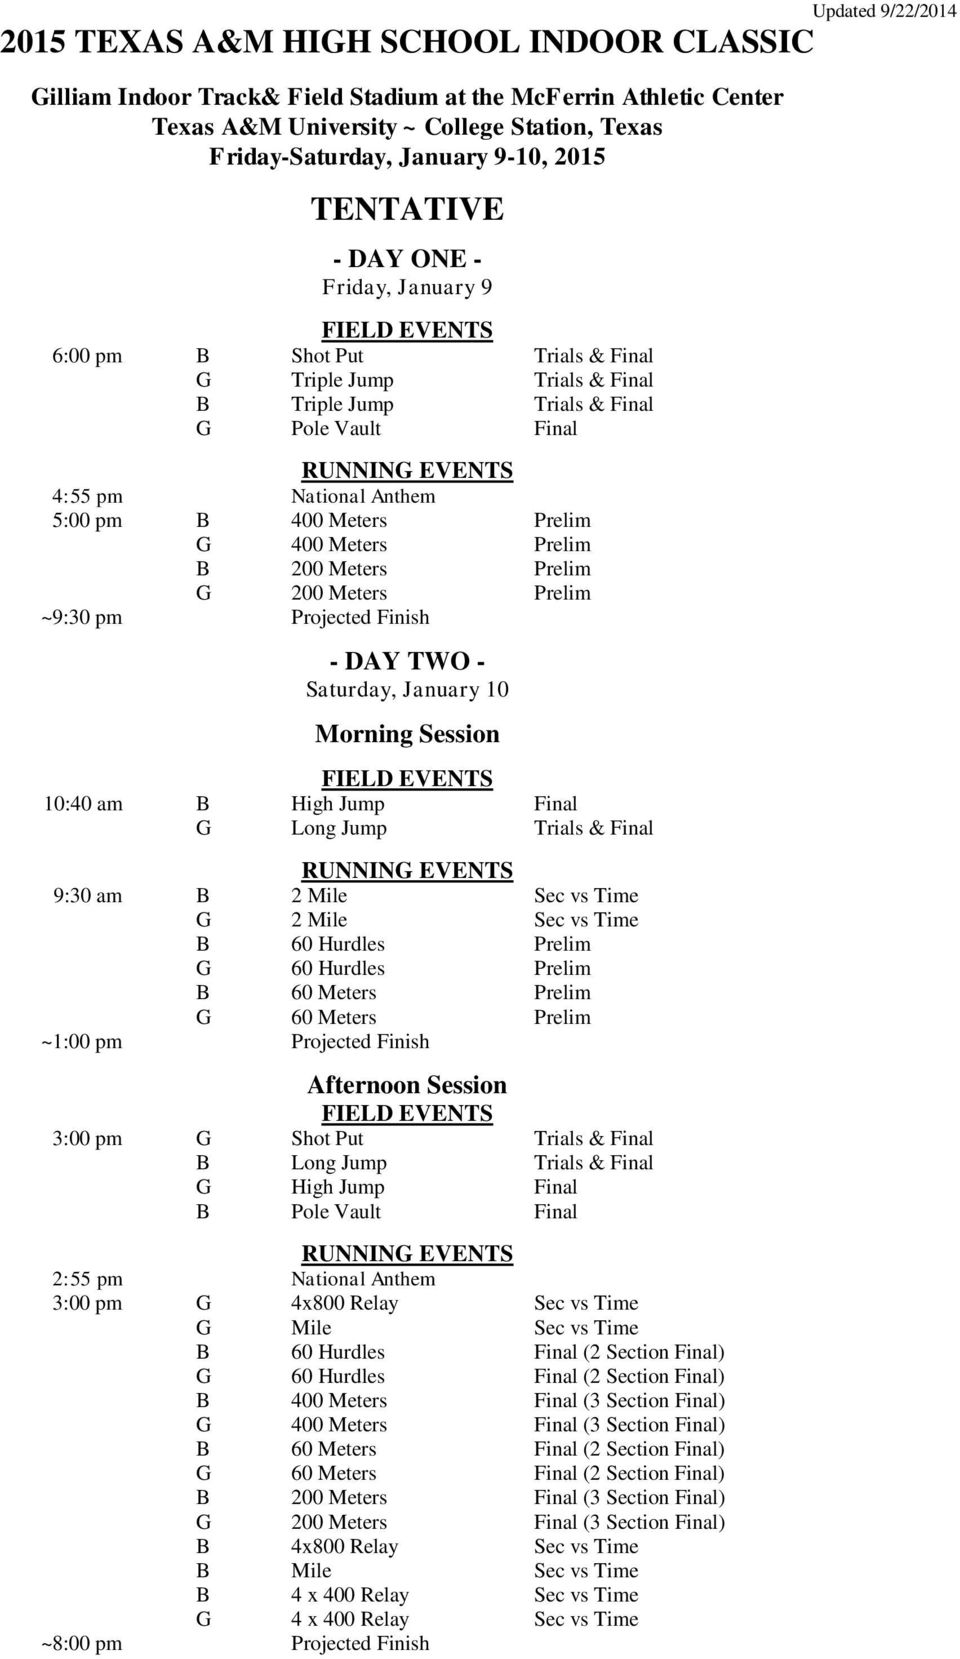 Prelim B 200 Meters Prelim G 200 Meters Prelim ~9:30 pm Projected Finish - DAY TWO - Saturday, January 10 Morning Session FIELD EVENTS 10:40 am B High Jump Final G Long Jump Trials & Final RUNNING